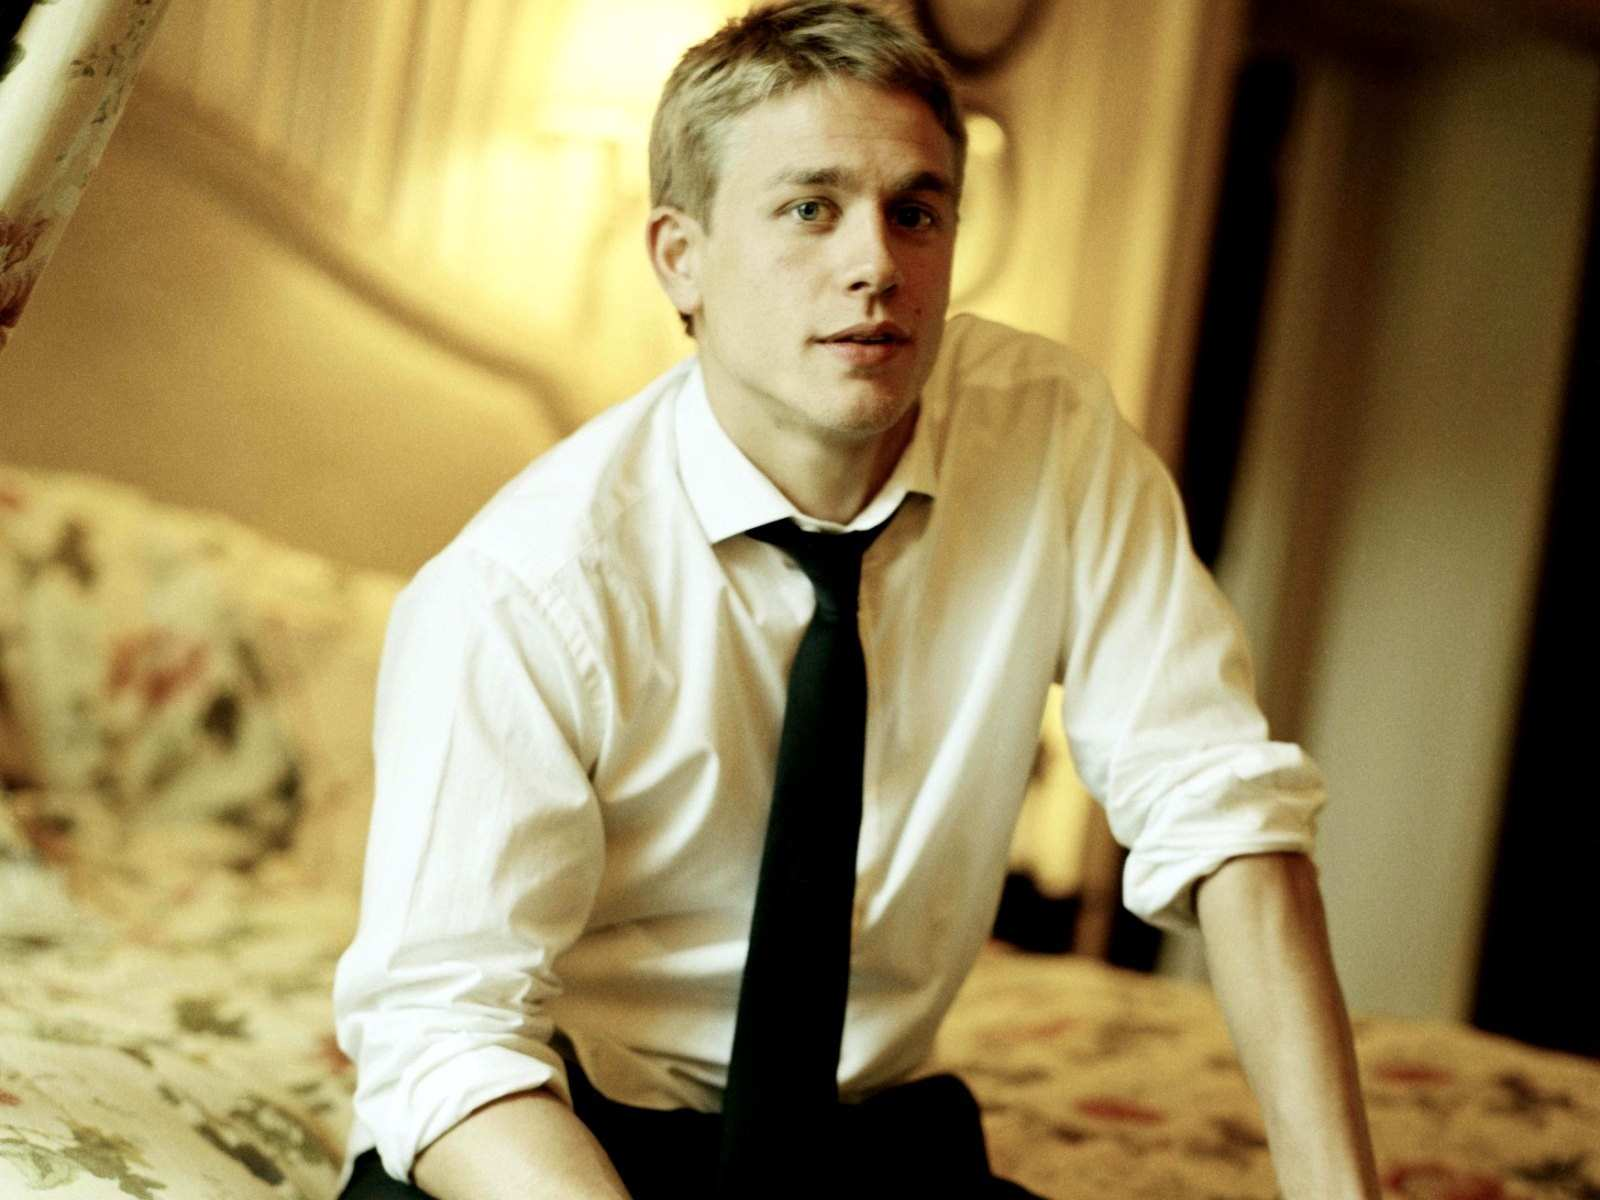 Charlie Hunnam younger photo two at reddit.com